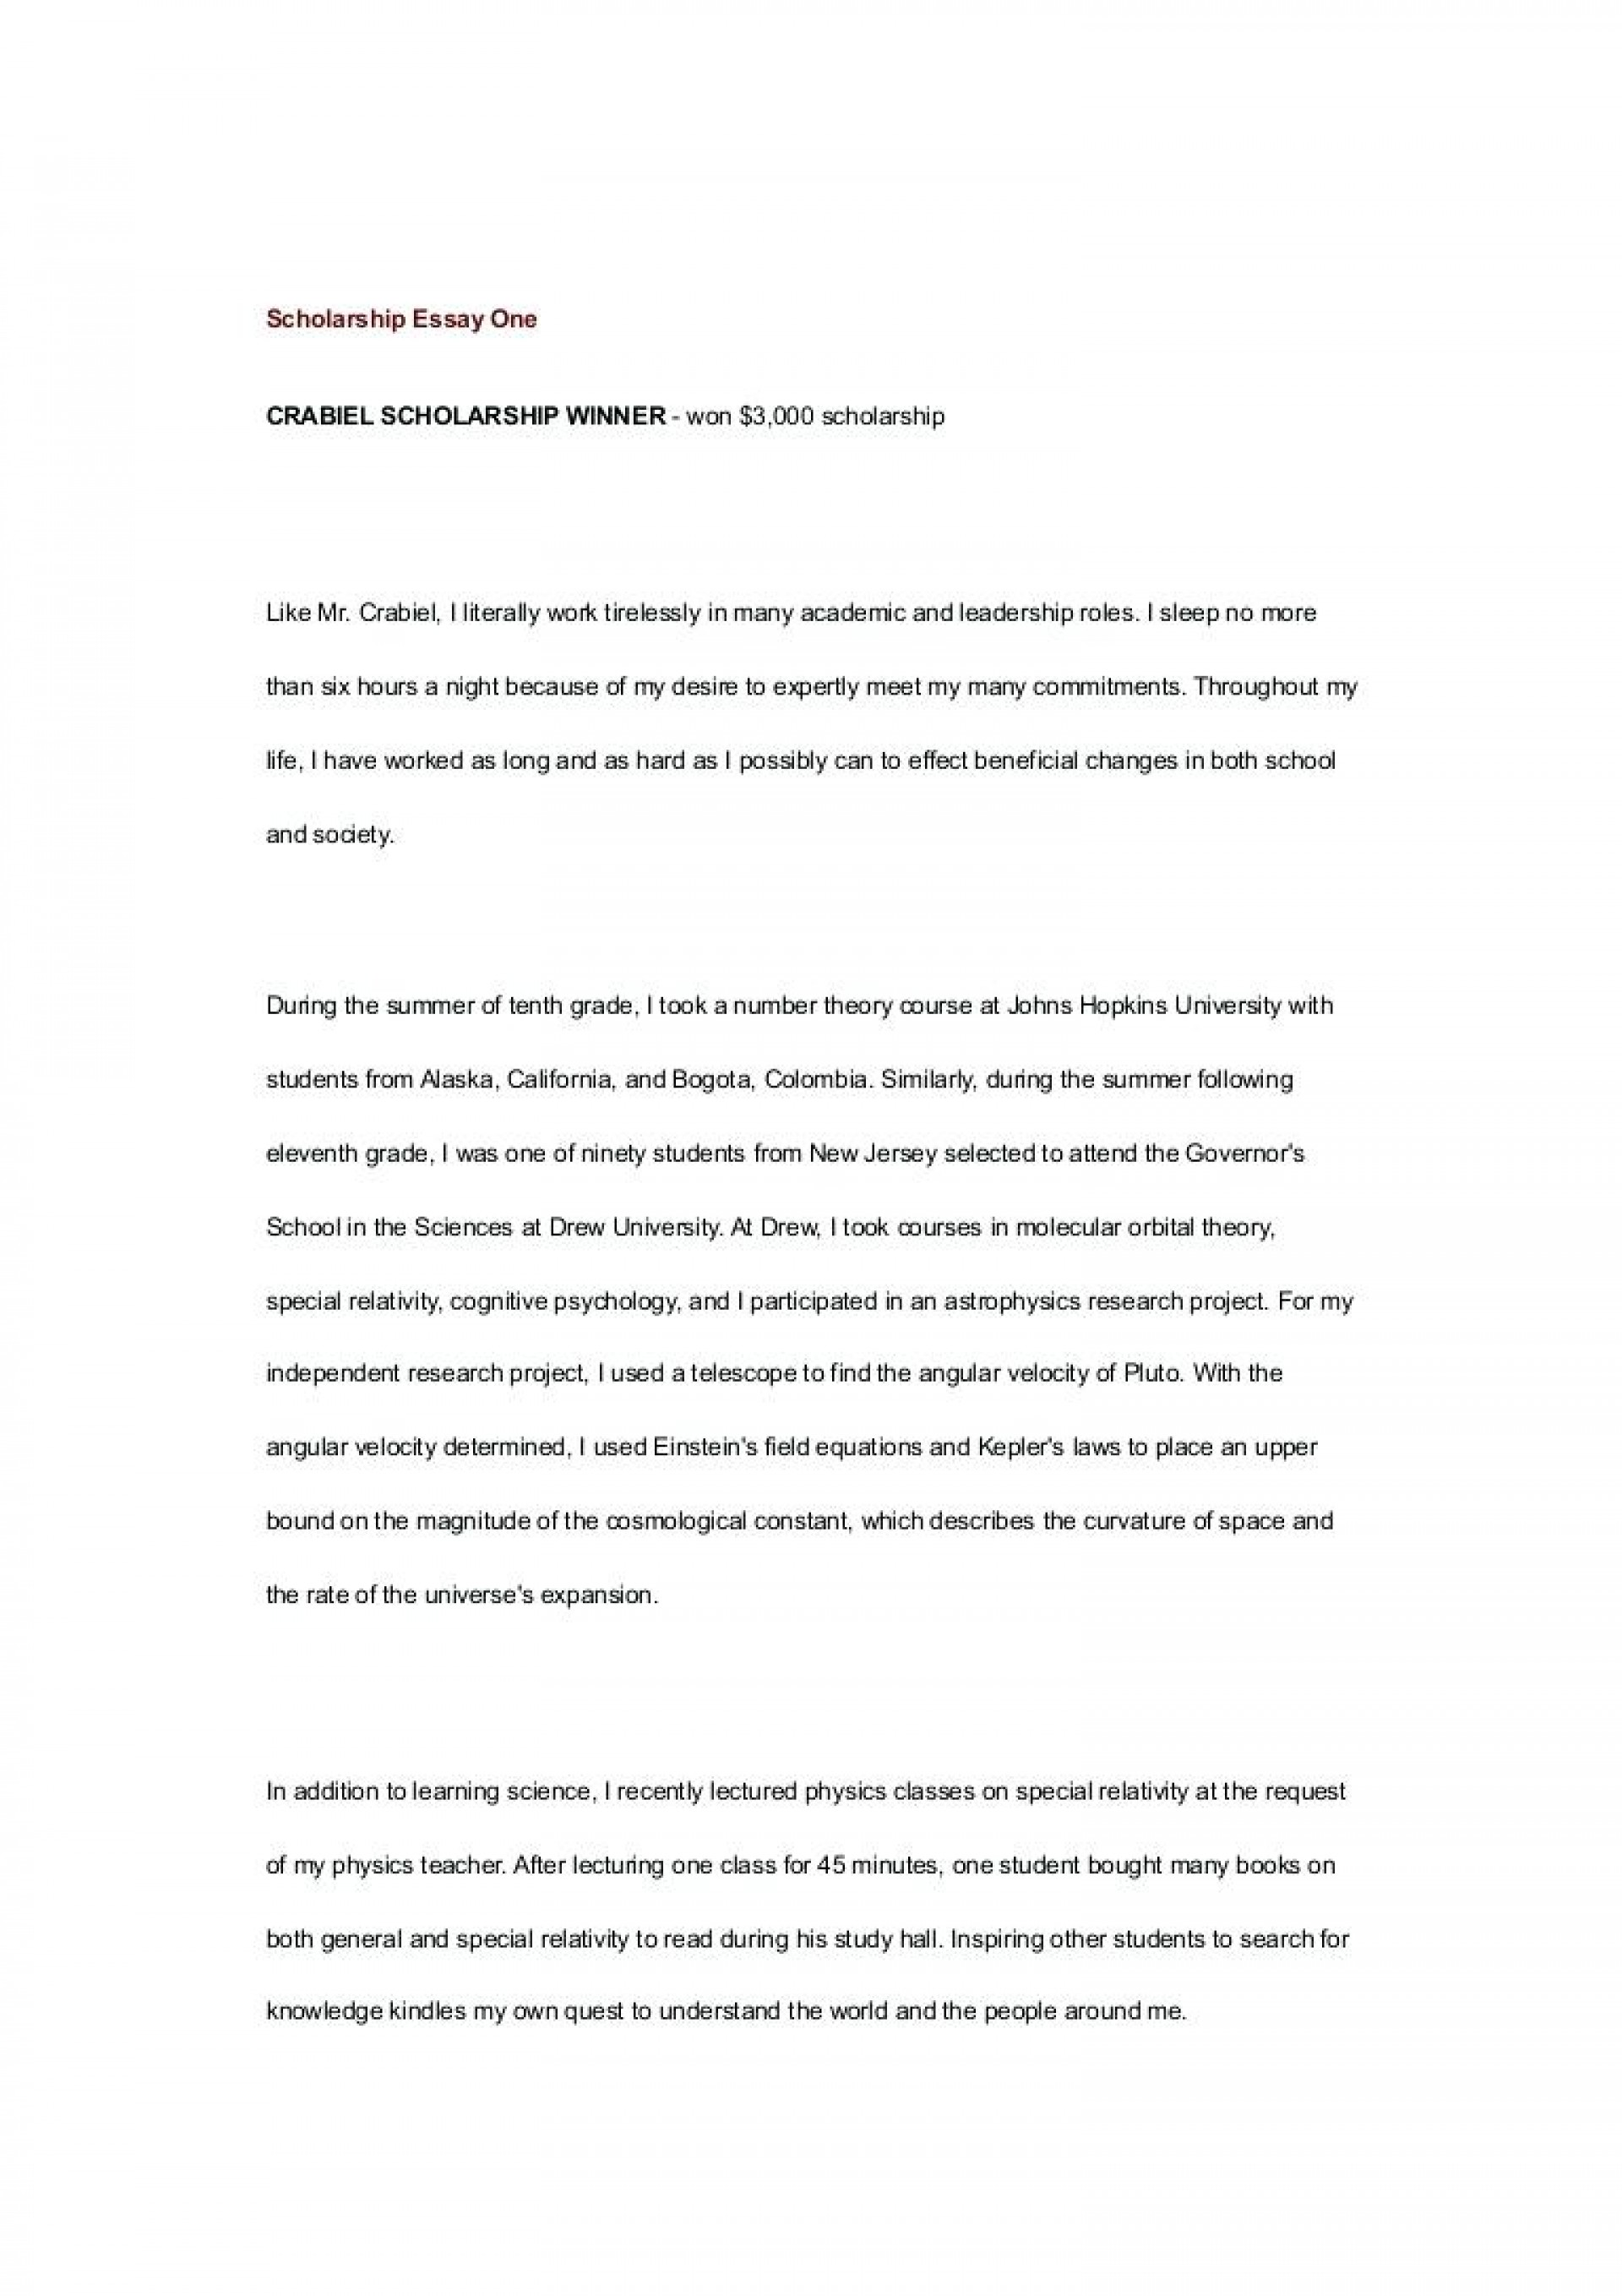 010 Essay Example No Scholarship College Application Template Legit Resume Cover Letter Thumbnail For Sample Wondrous Scholarships 2019 Graduates High School Seniors Applications 1920